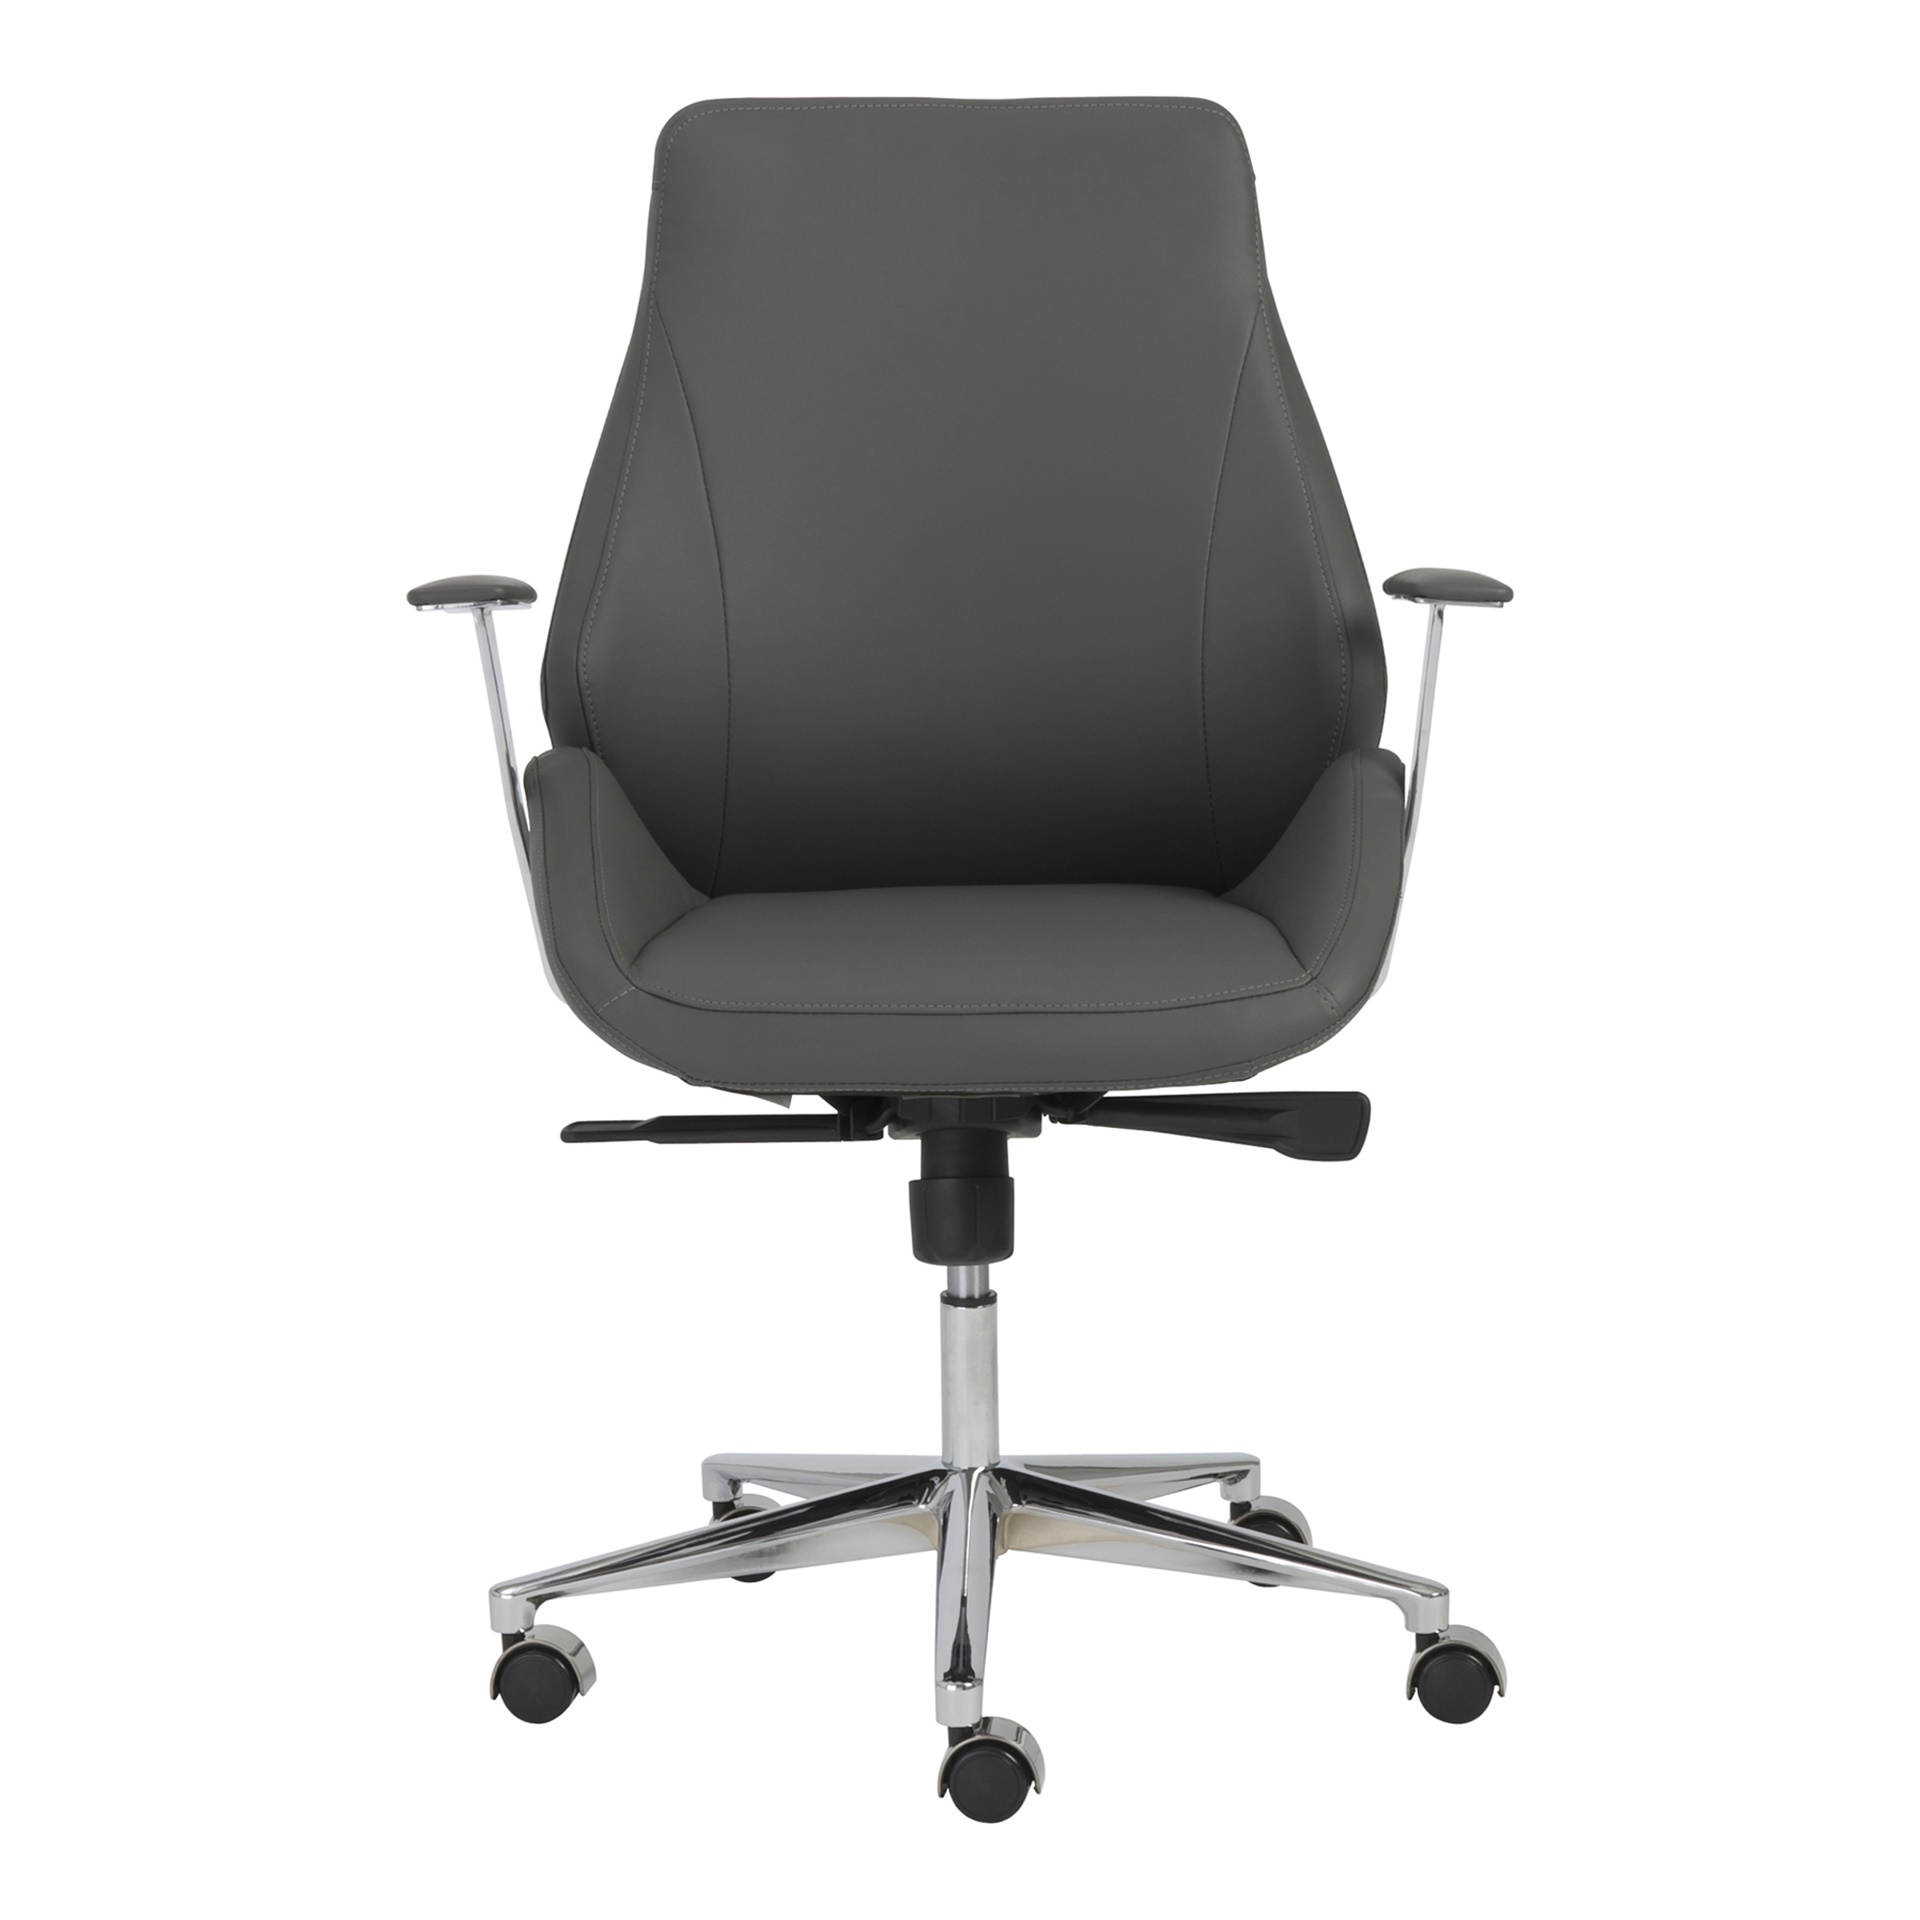 Low Back Office Chair Bergen Low Back Office Chair